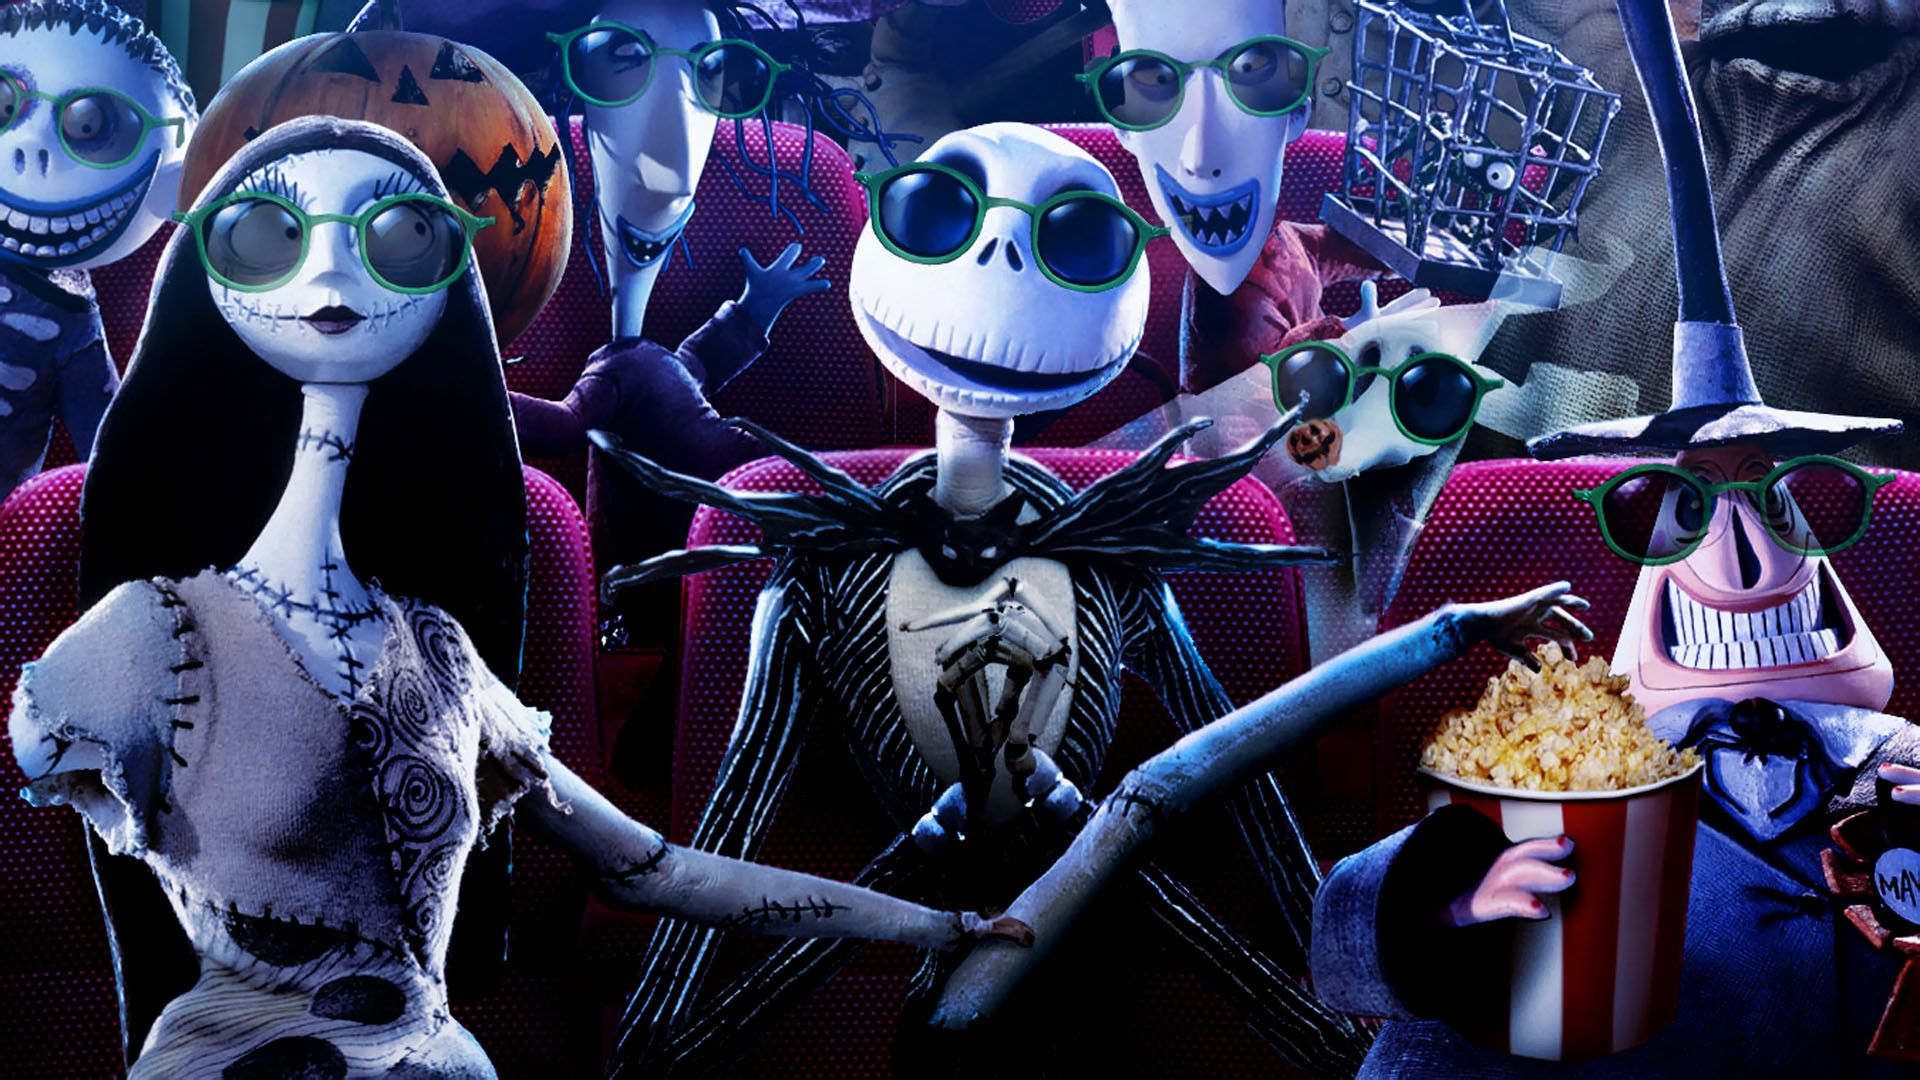 The Nightmare Before Christmas Reloaded Osteria Nightmare Before Christmas Movie Nightmare Before Christmas Wallpaper Nightmare Before Christmas Characters